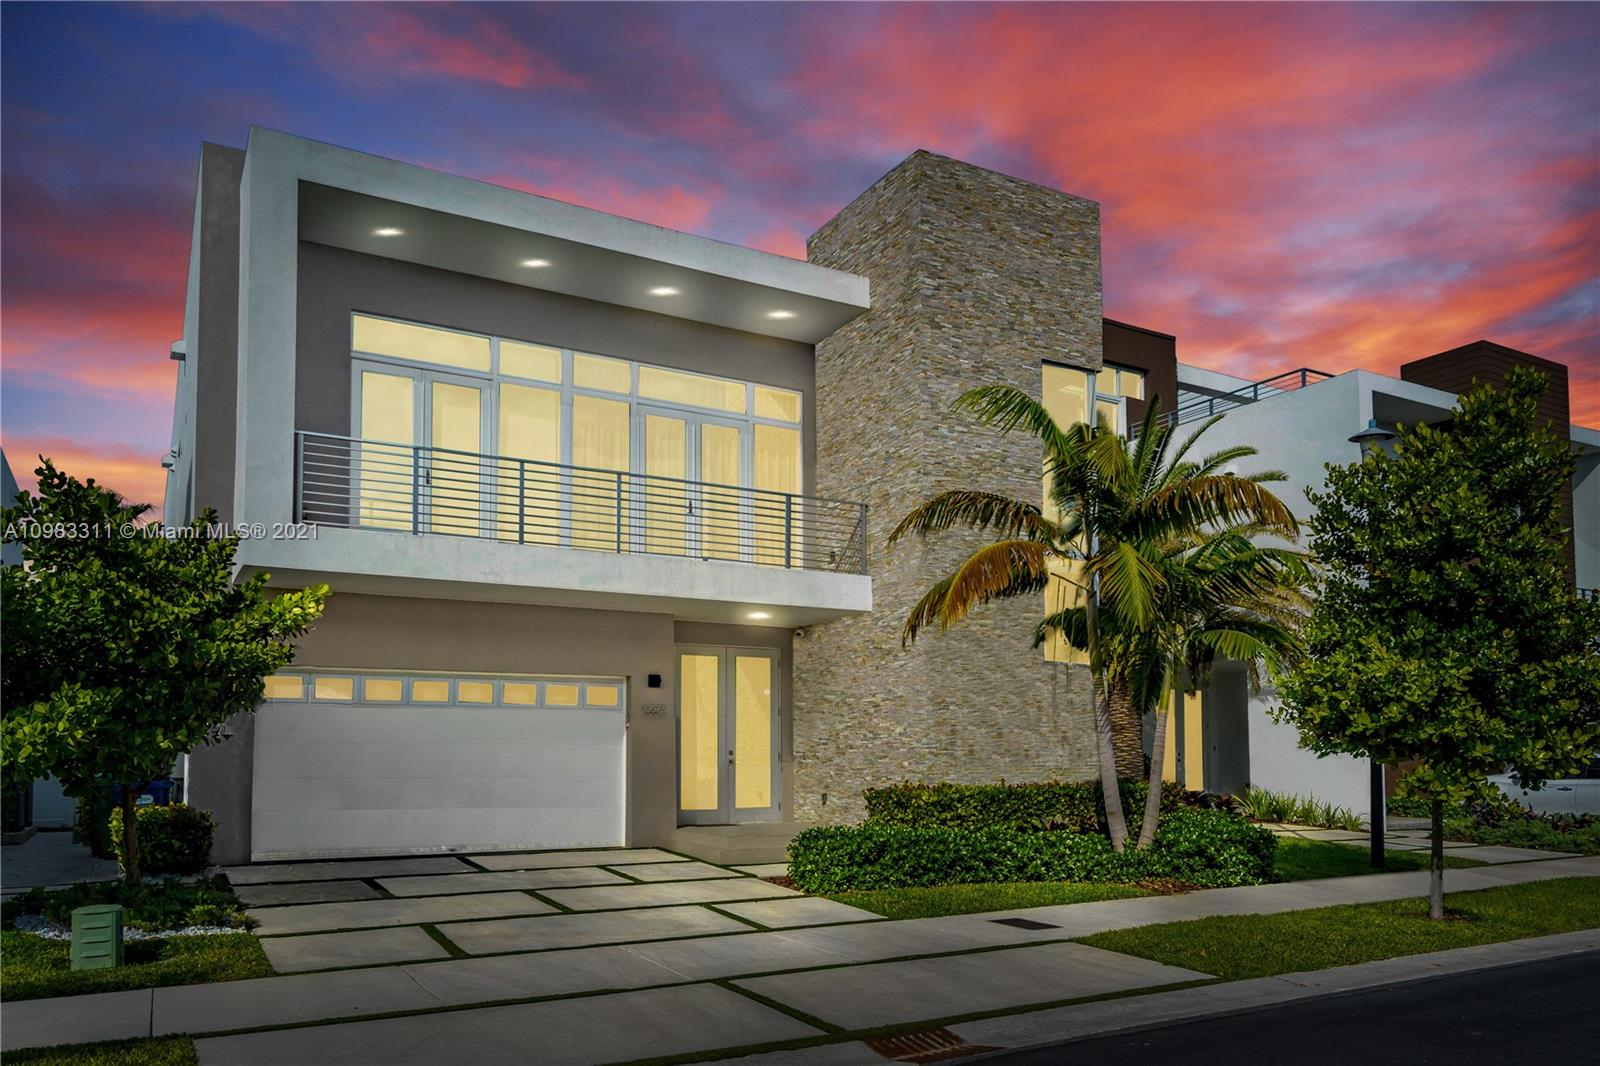 The mansions at doral is a gated enclave of 66 ultra-luxurious modern homes that brings the best residential experience for you and your family in the city of doral's most prestigious area. This 5-beds 5 ½ bath porcelanato troughout is fully upgraded. Every square foot has been masterfully designed by architects, designers, and craftsmen. Custom european kitchen w/subzero/wolf appliances. Automatic curtains in double height living room and main room, walk in closets in all rooms, with its stunning summer kitchen next to the lake, designer lamp and courtins in double height space living room, laundry room with utility sink and an exquisite synthetic vertical garden wall in the patio. A unique miami luxury residence property, a must see! Also sold with furniture for a negotiable price.